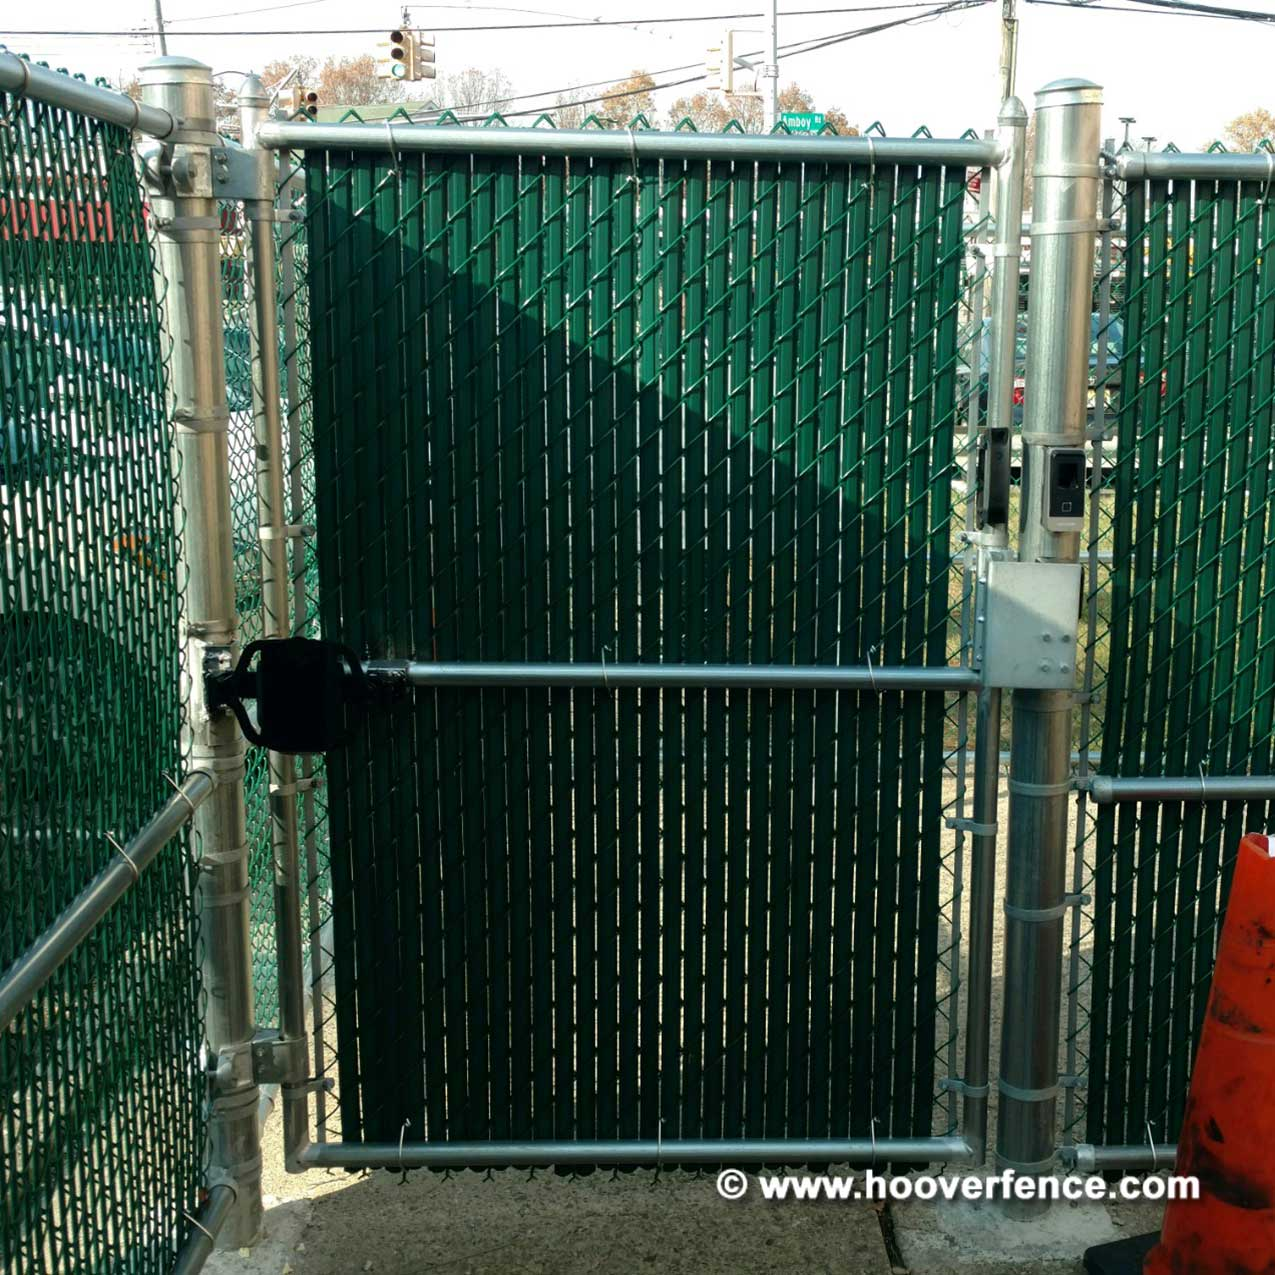 Customer Install - KantSlam Gate Closers on Chain Link Access Control Gates - Staten Island, NY